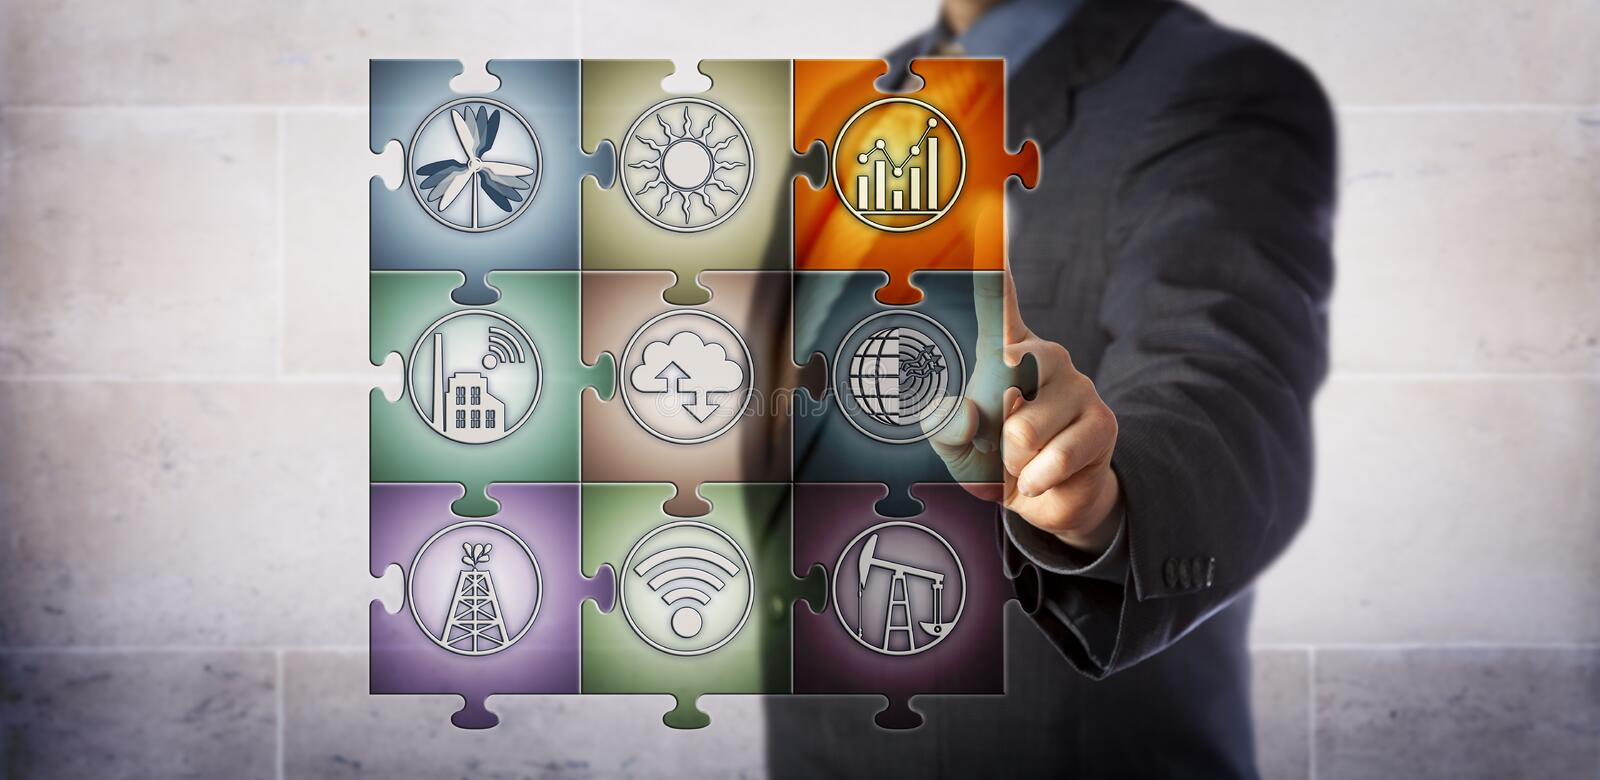 Planner Controlling Smart Energy Management. Blue chip plant manager touching chart icon in virtual planning matrix in form of a jigsaw puzzle. Industry concept stock image